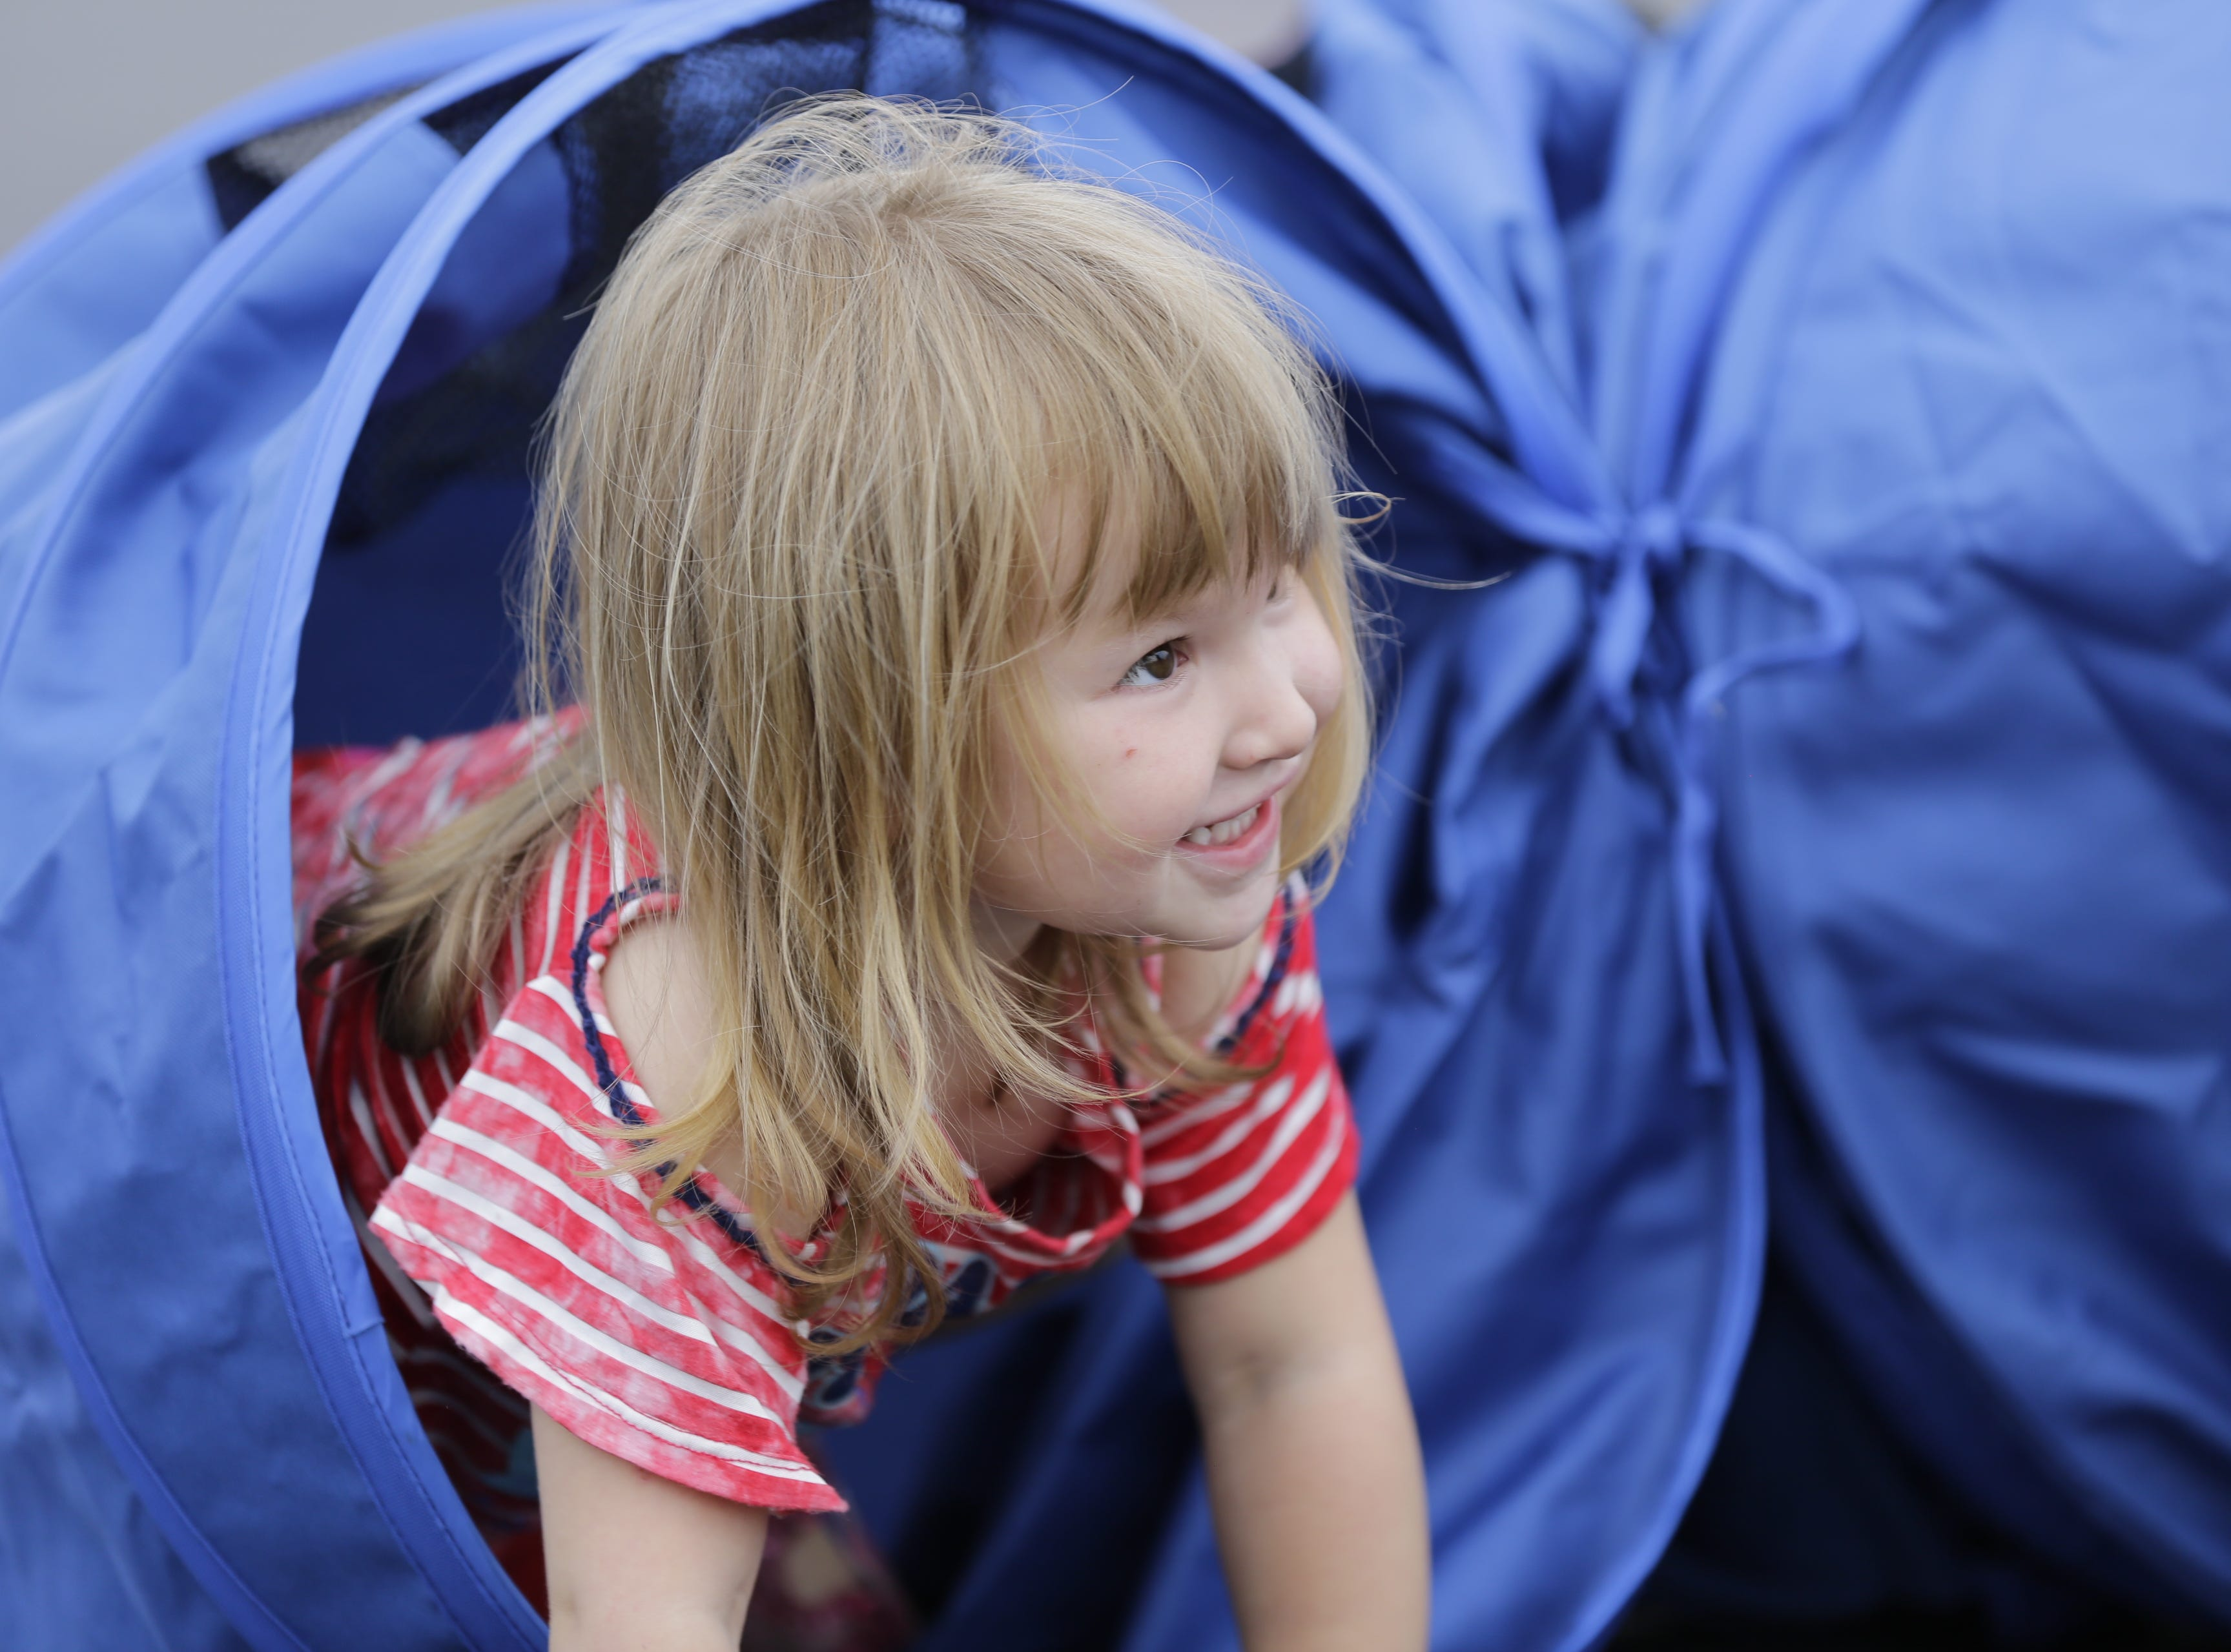 Alyssa Jensen, 2, crawls through a tunnel during the National Night Out event put on by the Wisconsin Rapids Police Department in the Crossview Church parking lot in Wisconsin Rapids Tuesday, August 7, 2018.